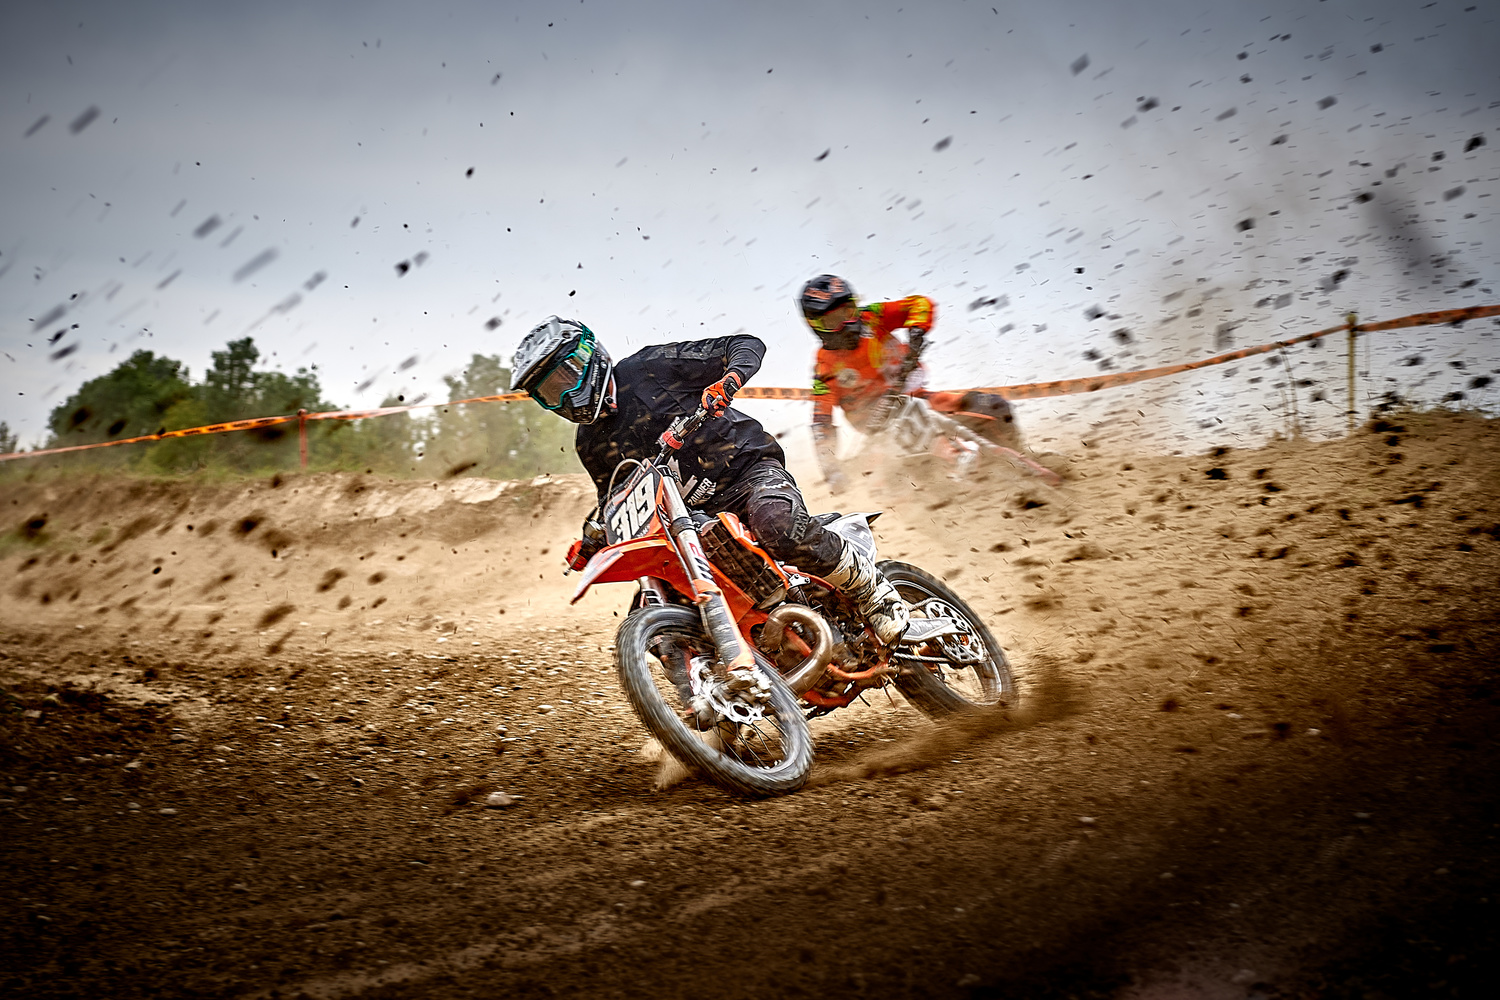 MX Race by Wolfgang Hackl